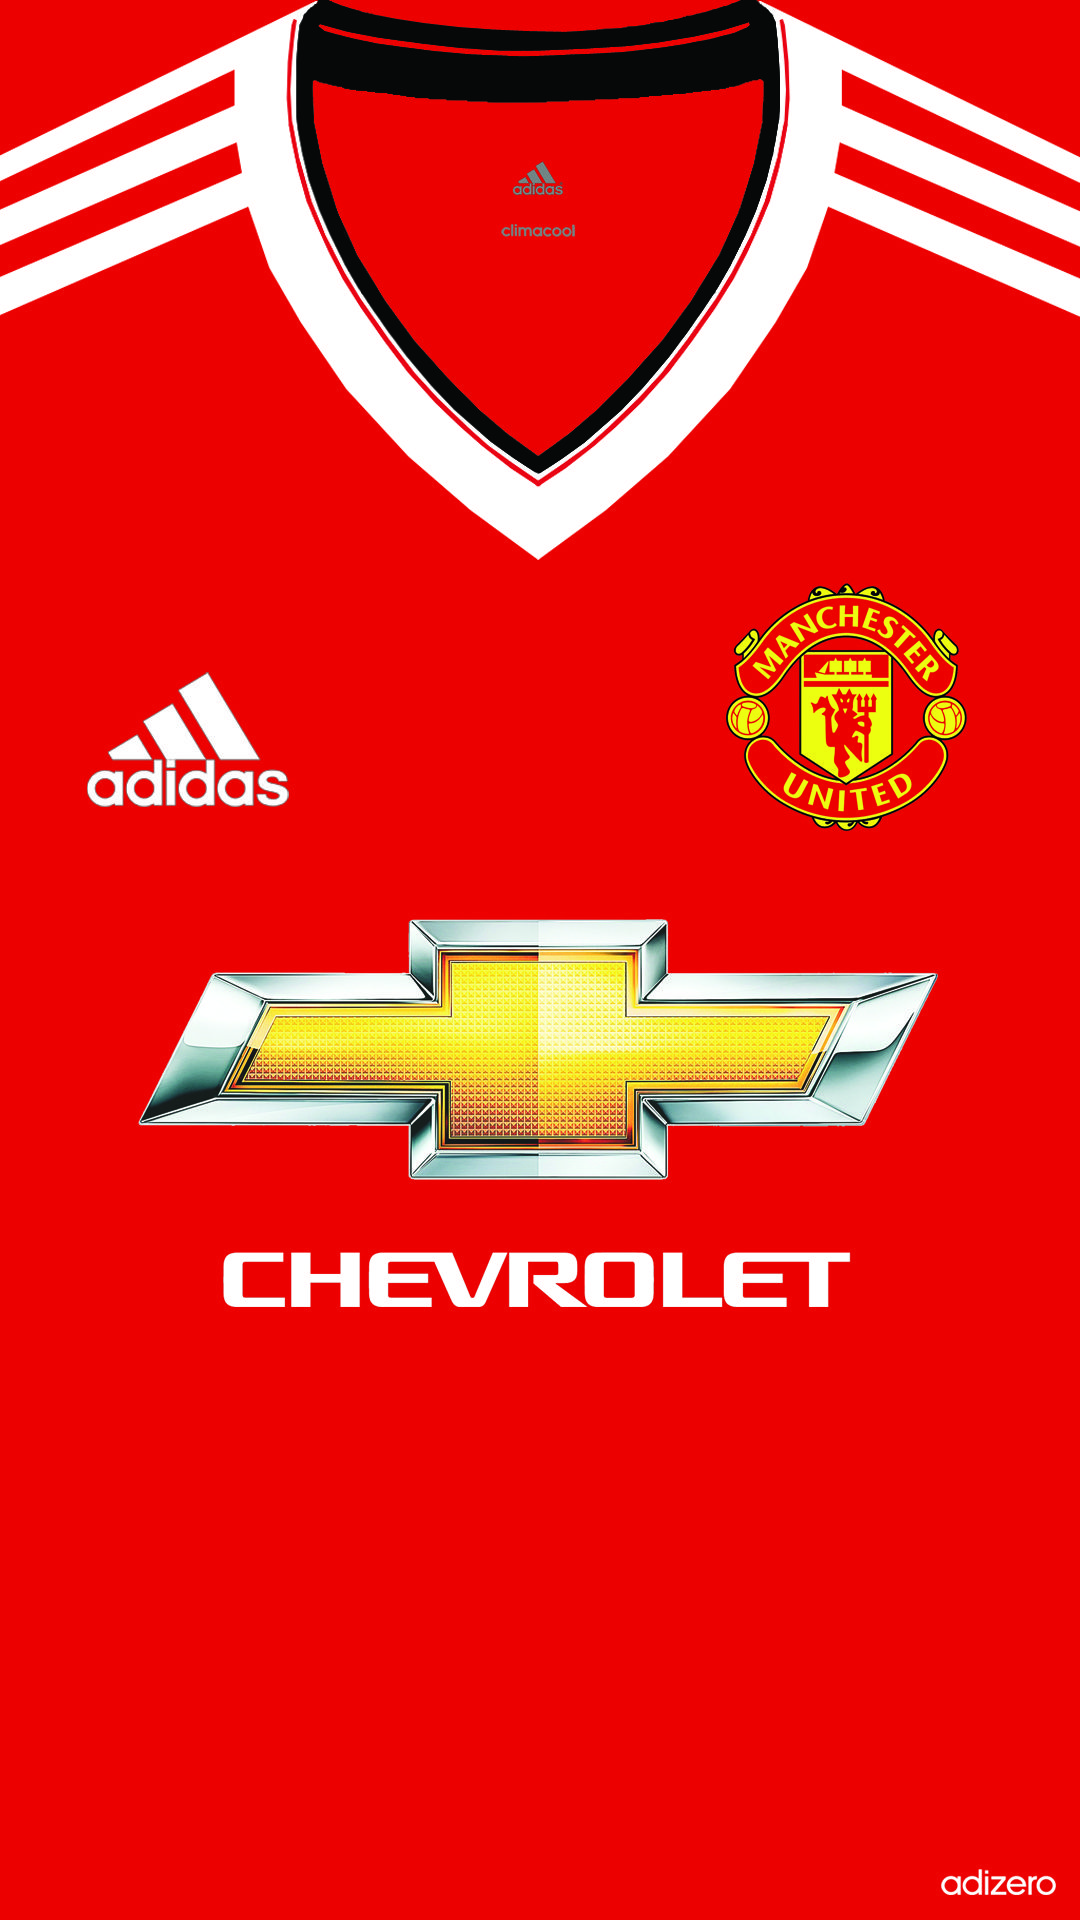 Manchester united home kit 201516 iphone 5 5s 6 wallpaper iphone manchester united home kit 201516 iphone 5 5s 6 wallpaper voltagebd Choice Image